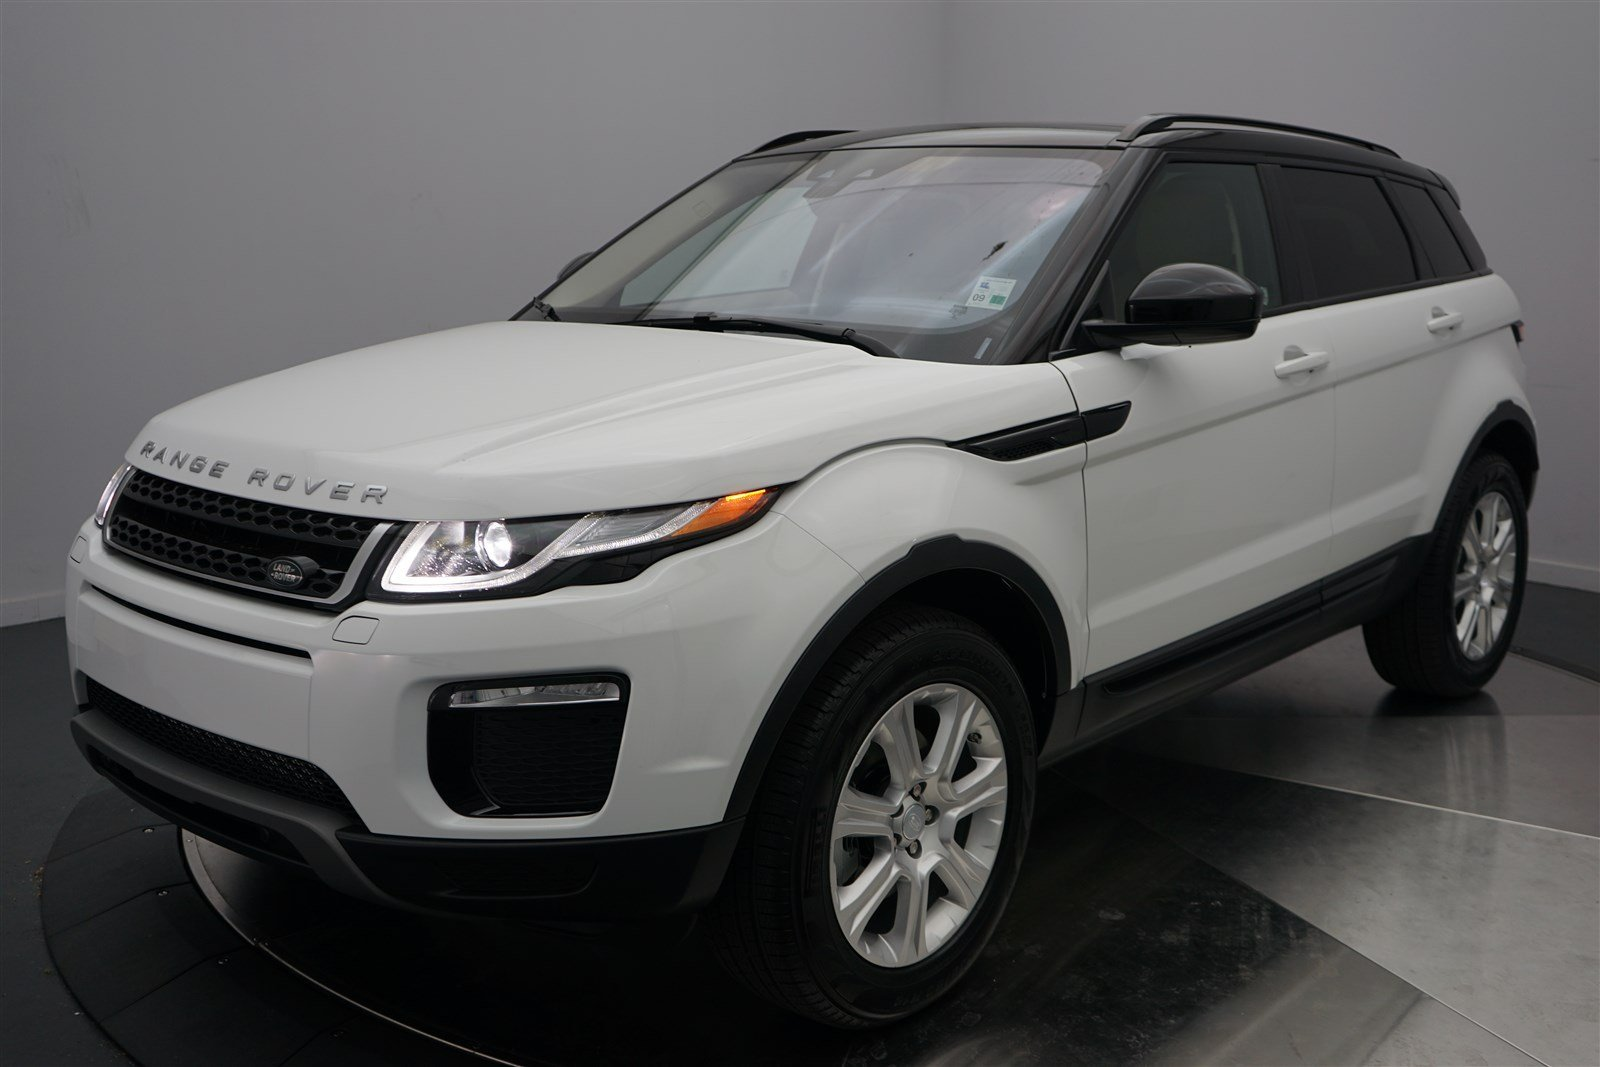 land rover of shreveport new used cars shreveport la autos post. Black Bedroom Furniture Sets. Home Design Ideas